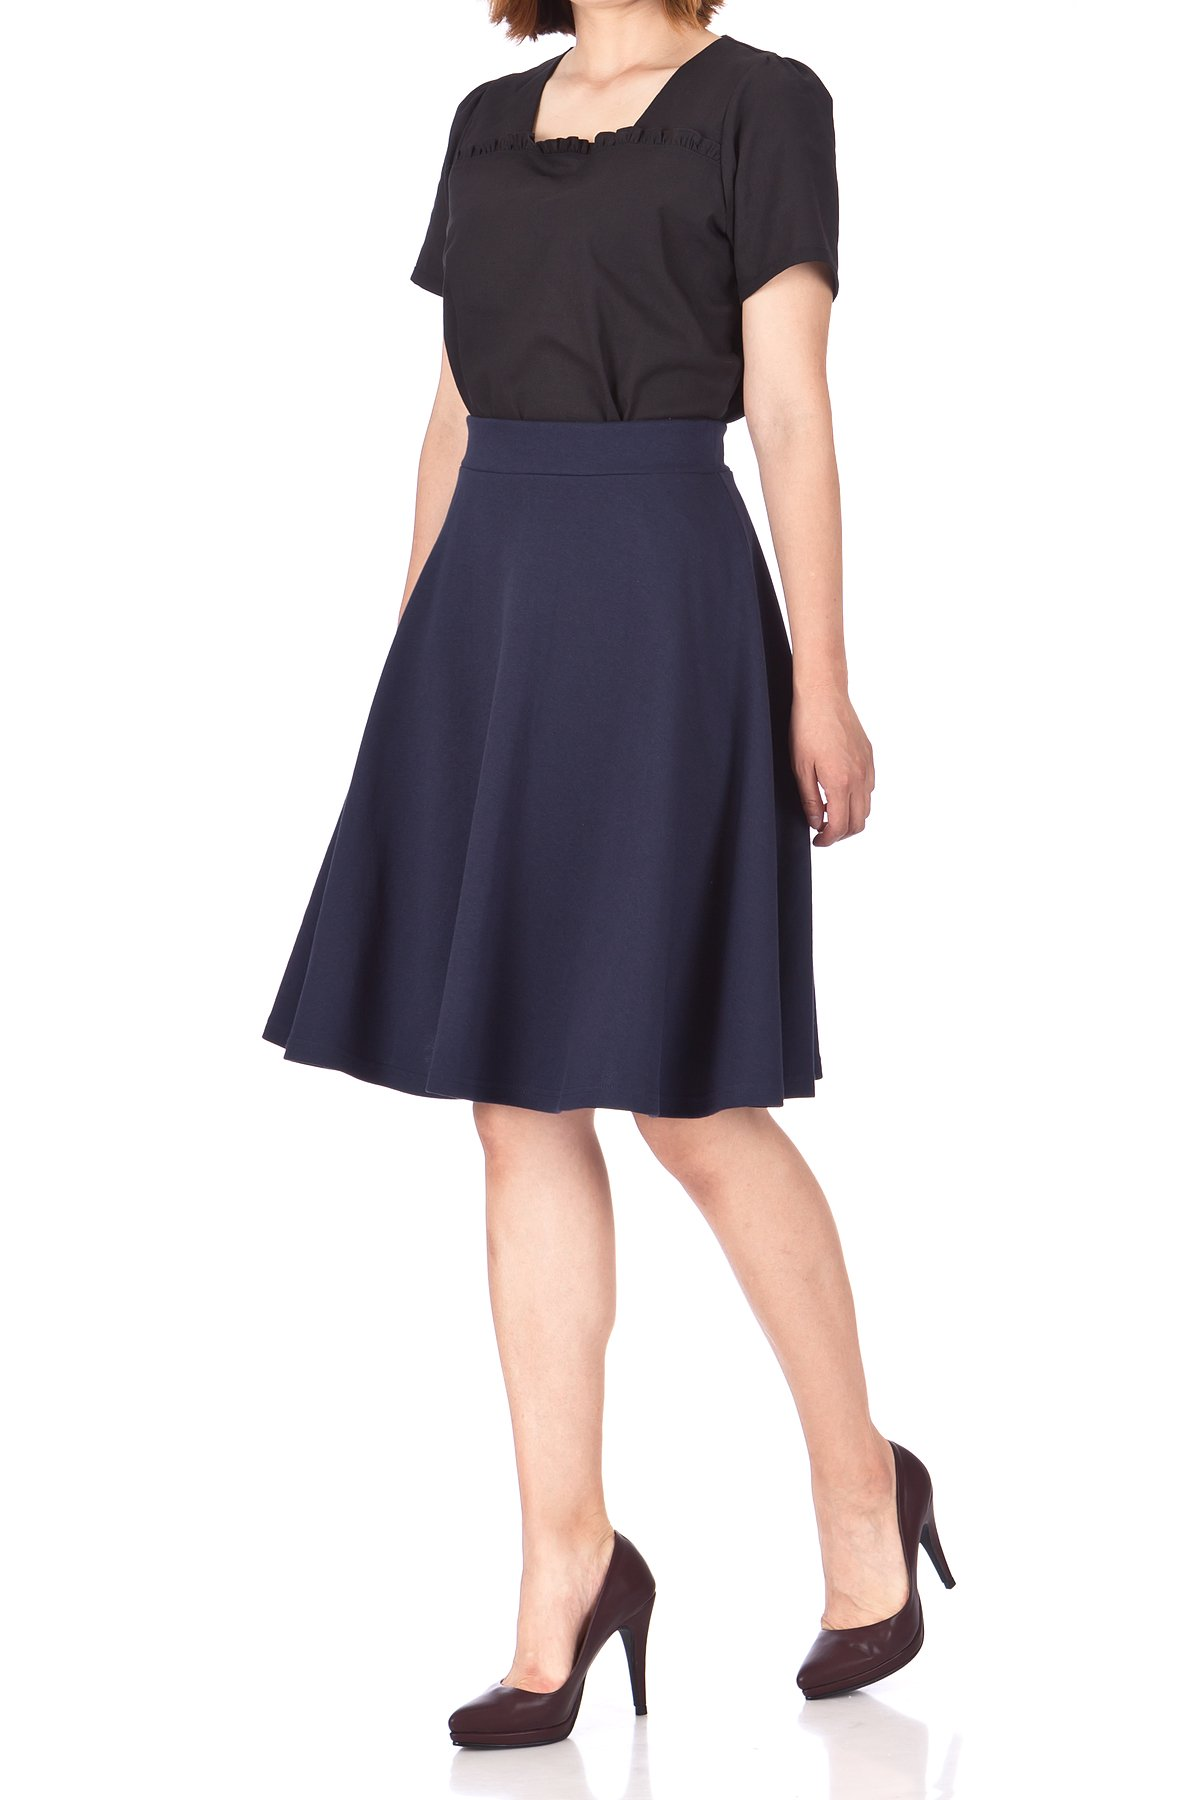 Comfy and Lovely Cotton Blend Versatile Casual Office High Waist A line Full Flared Swing Circle Skater Knee Length Skirt Navy 05